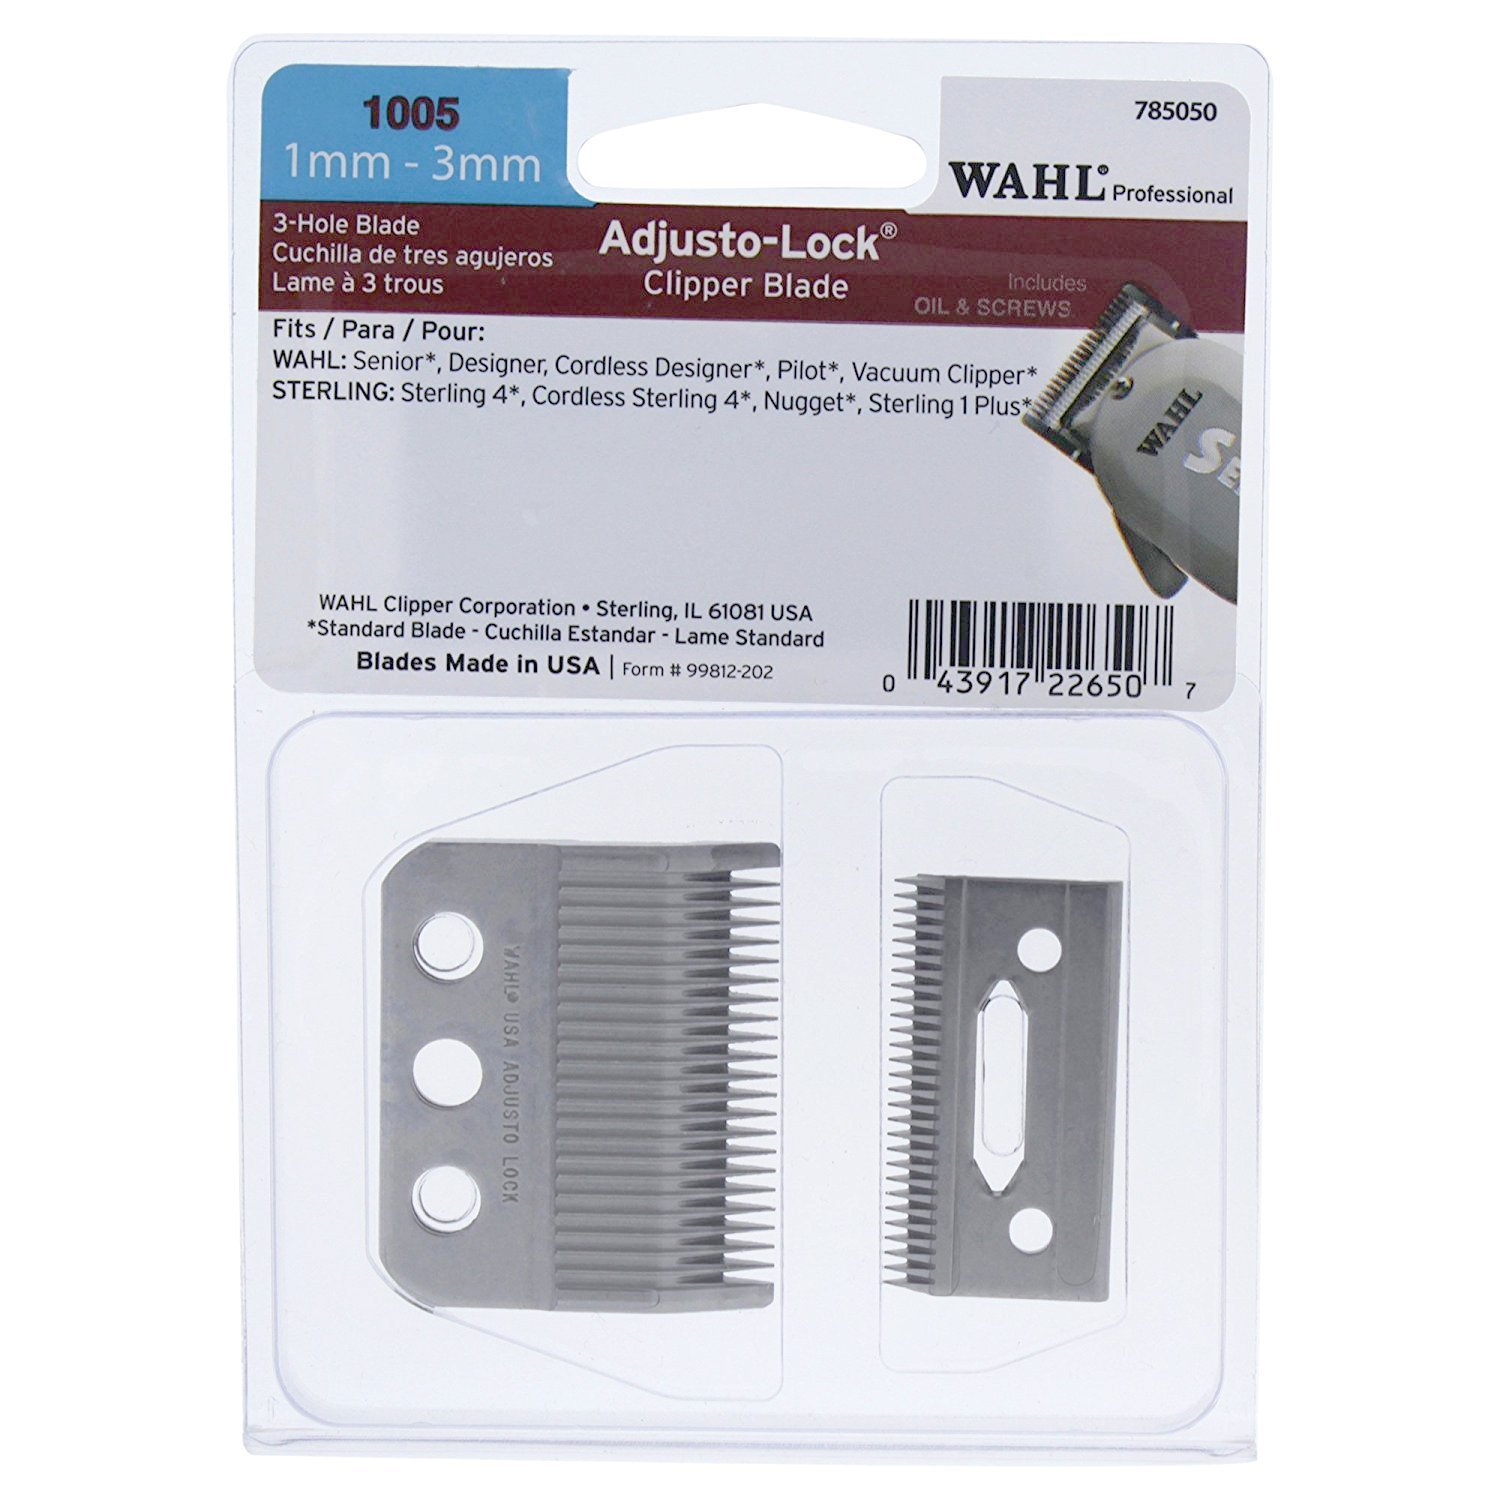 Amazon wahl professional adjusto lock 1mm 3mm clipper professional adjusto lock 1mm 3mm clipper blade 1005 great for professional stylists and barbers includes oil screws instructions beauty falaconquin